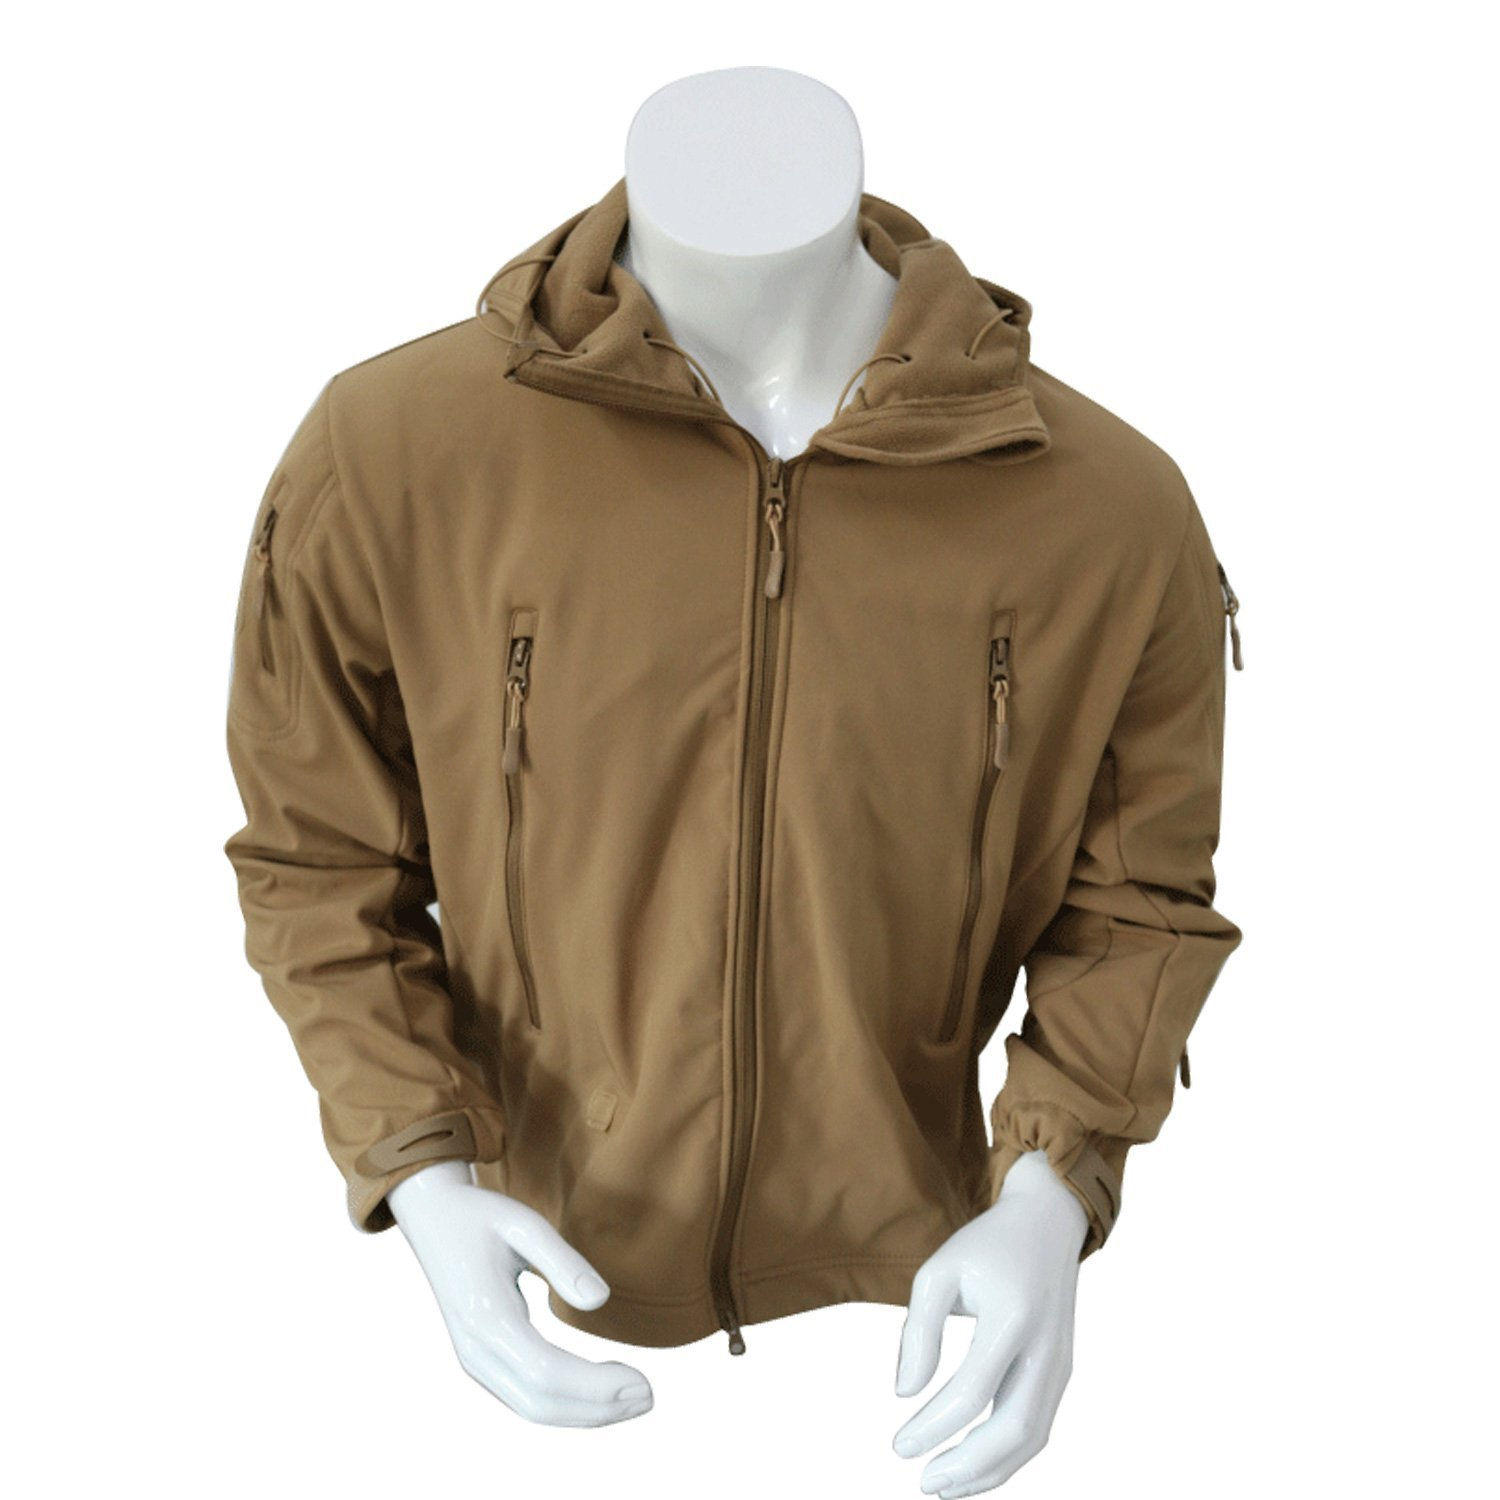 Other Camping & Hiking Sporting Goods Us Special Ops Softshell Army Tactical Soft Shell Jacket Coyote Brown Xxl A Great Variety Of Models